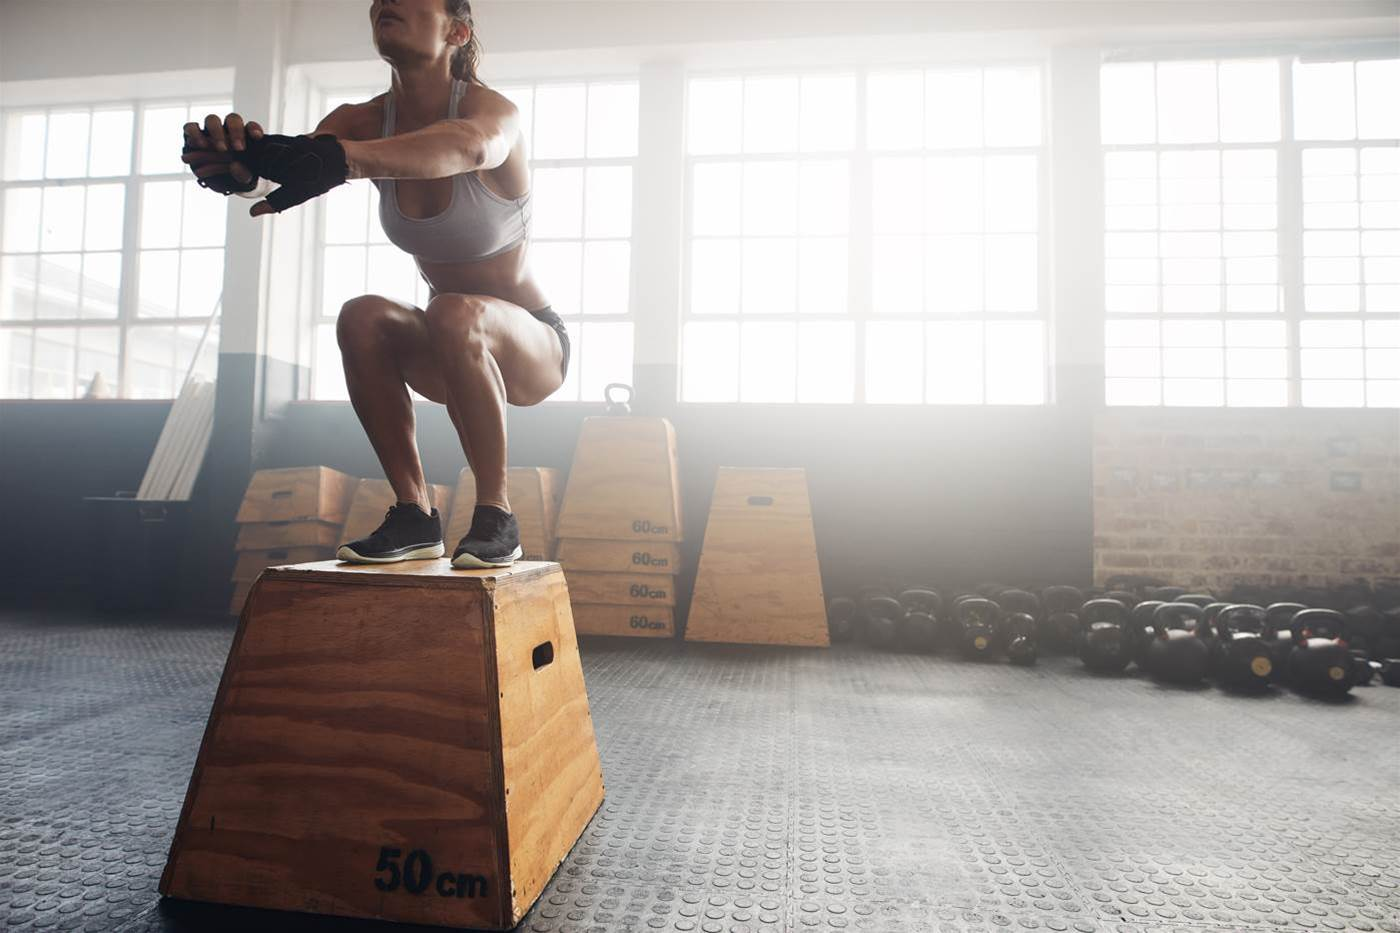 Box Jump variations for cyclists